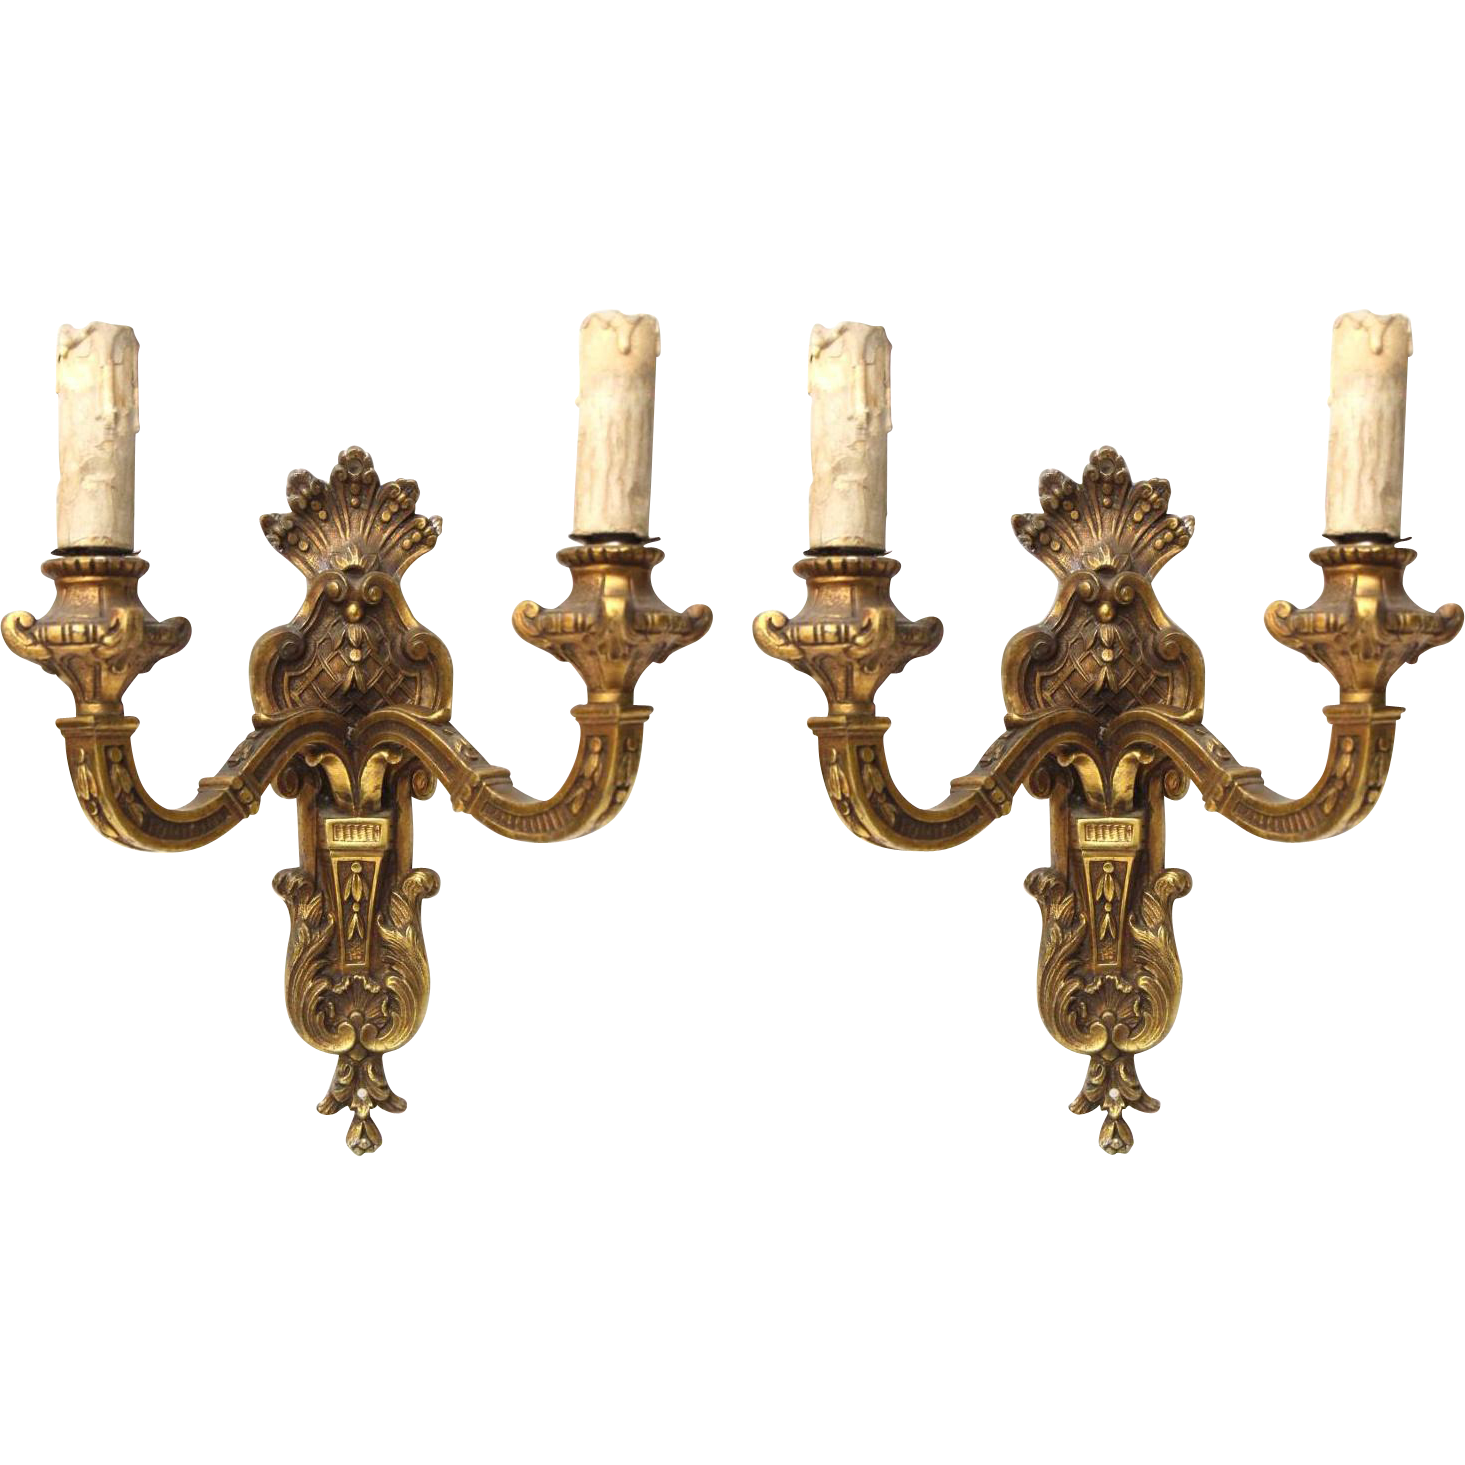 Set of ornate bronze wall sconces